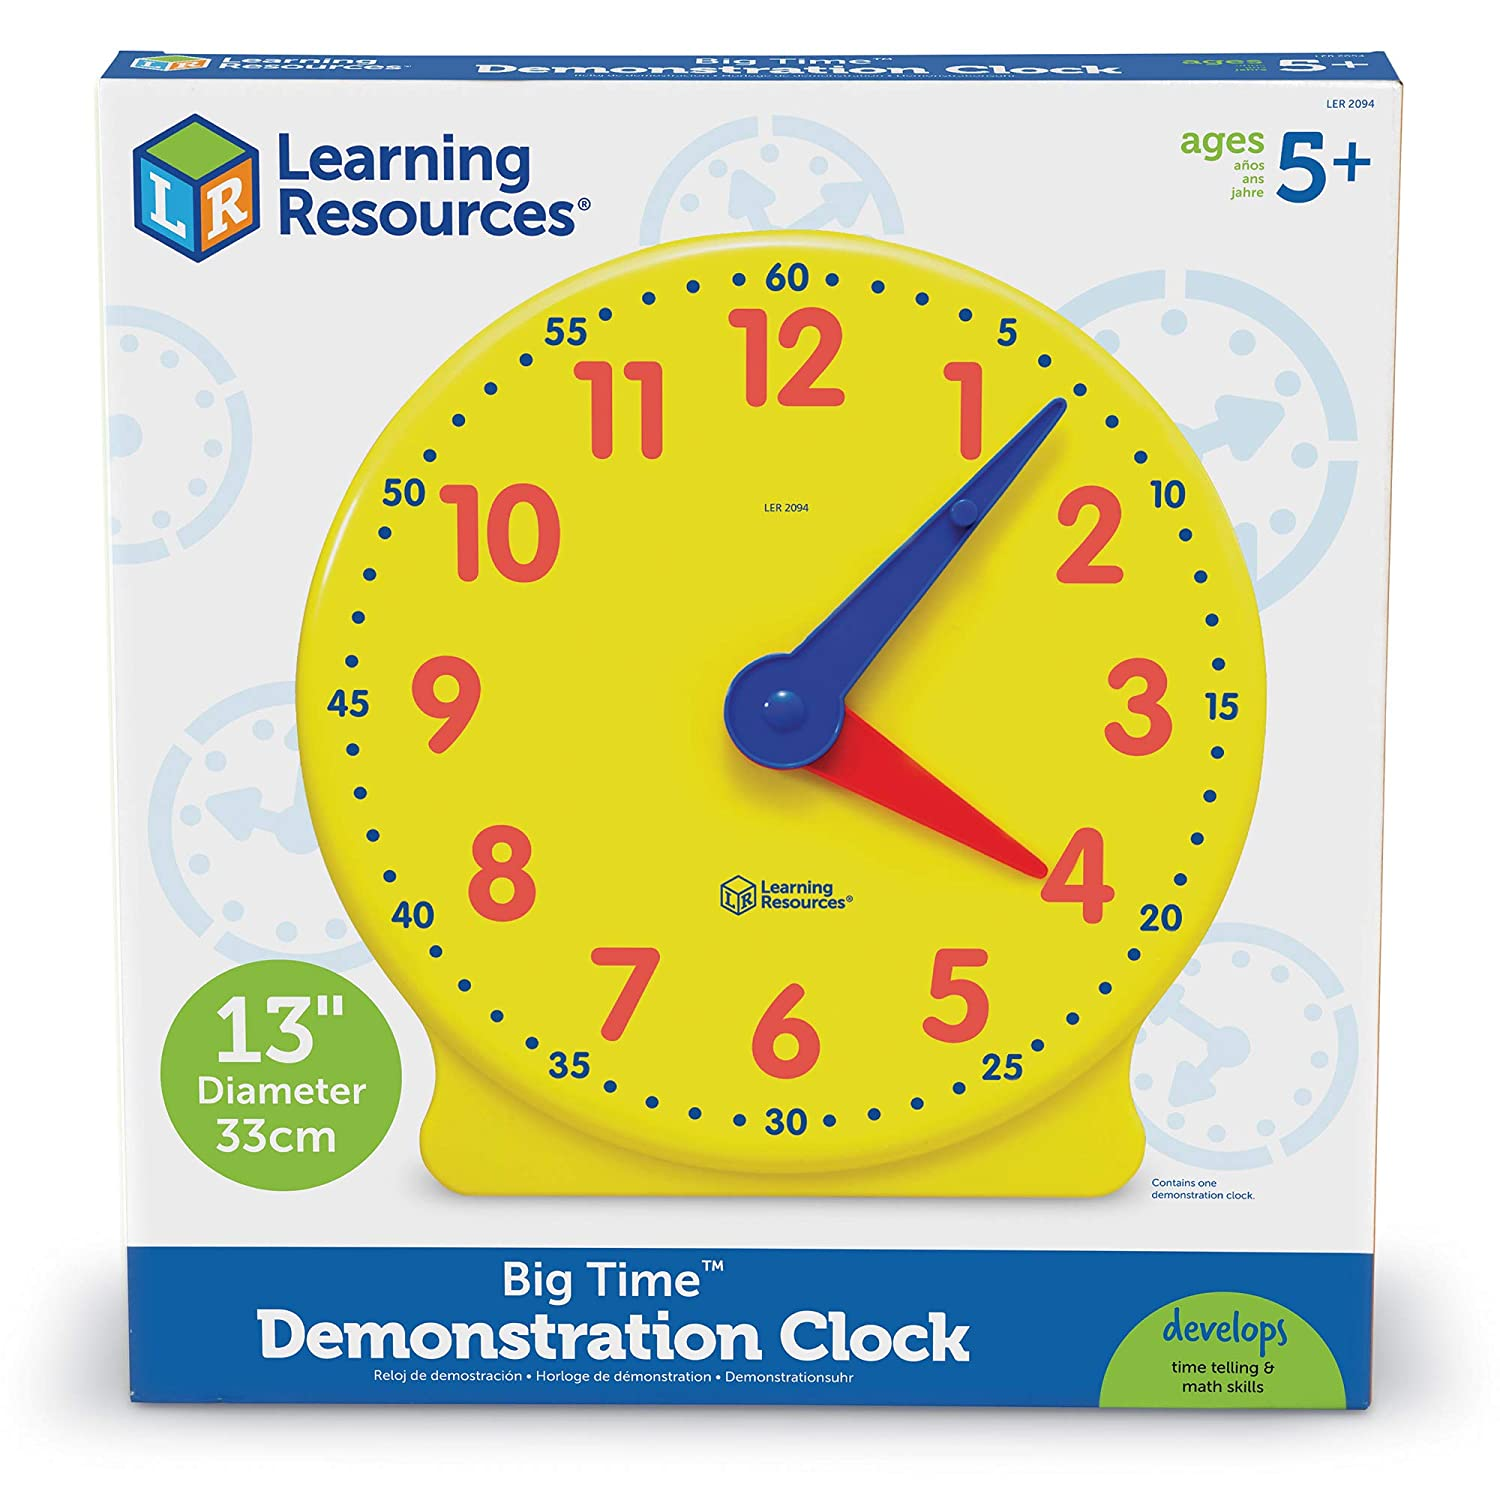 B00004WKT8 Learning Resources Big Time Learning Clock, 12 Hour, Basic Math Development, Ages 5+ 712V-Oss-eL